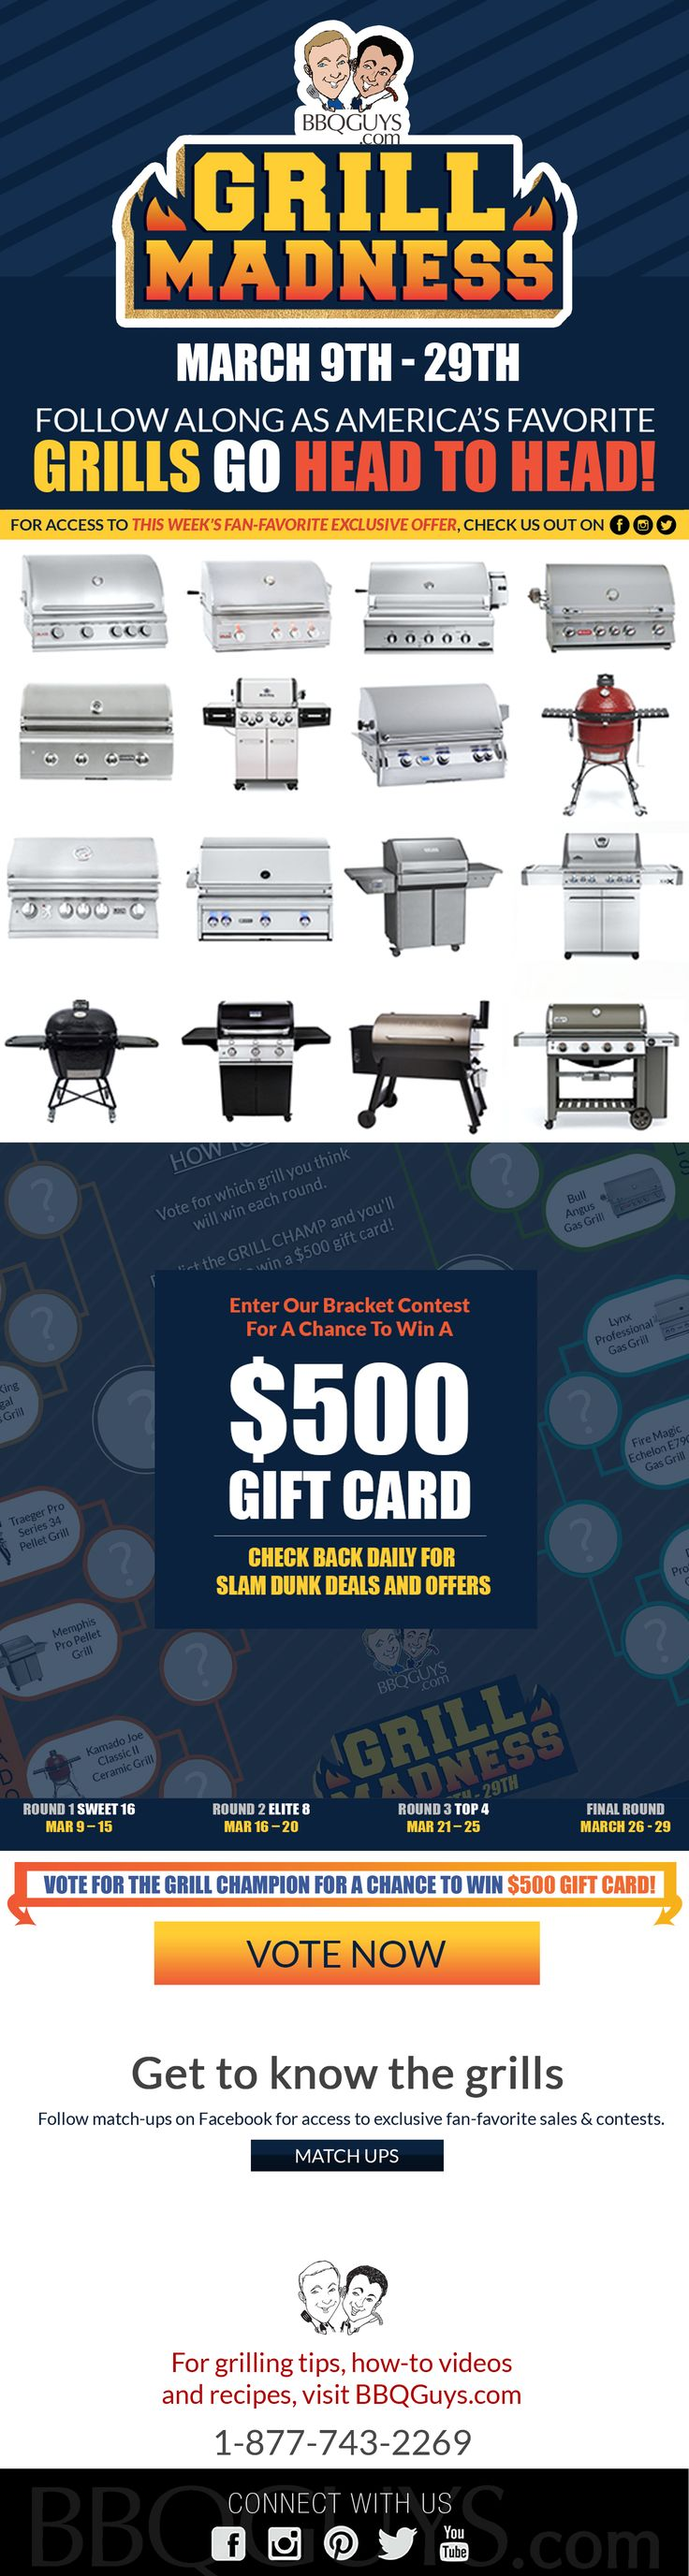 Grill Madness starts Thursday 3-19. America's favorite bbq grills & smokers are going head-to-head!  check back daily for access to exclusive fan-favorite sales and contests! #GrillMadness18 #bbq #grills #MarchMadness